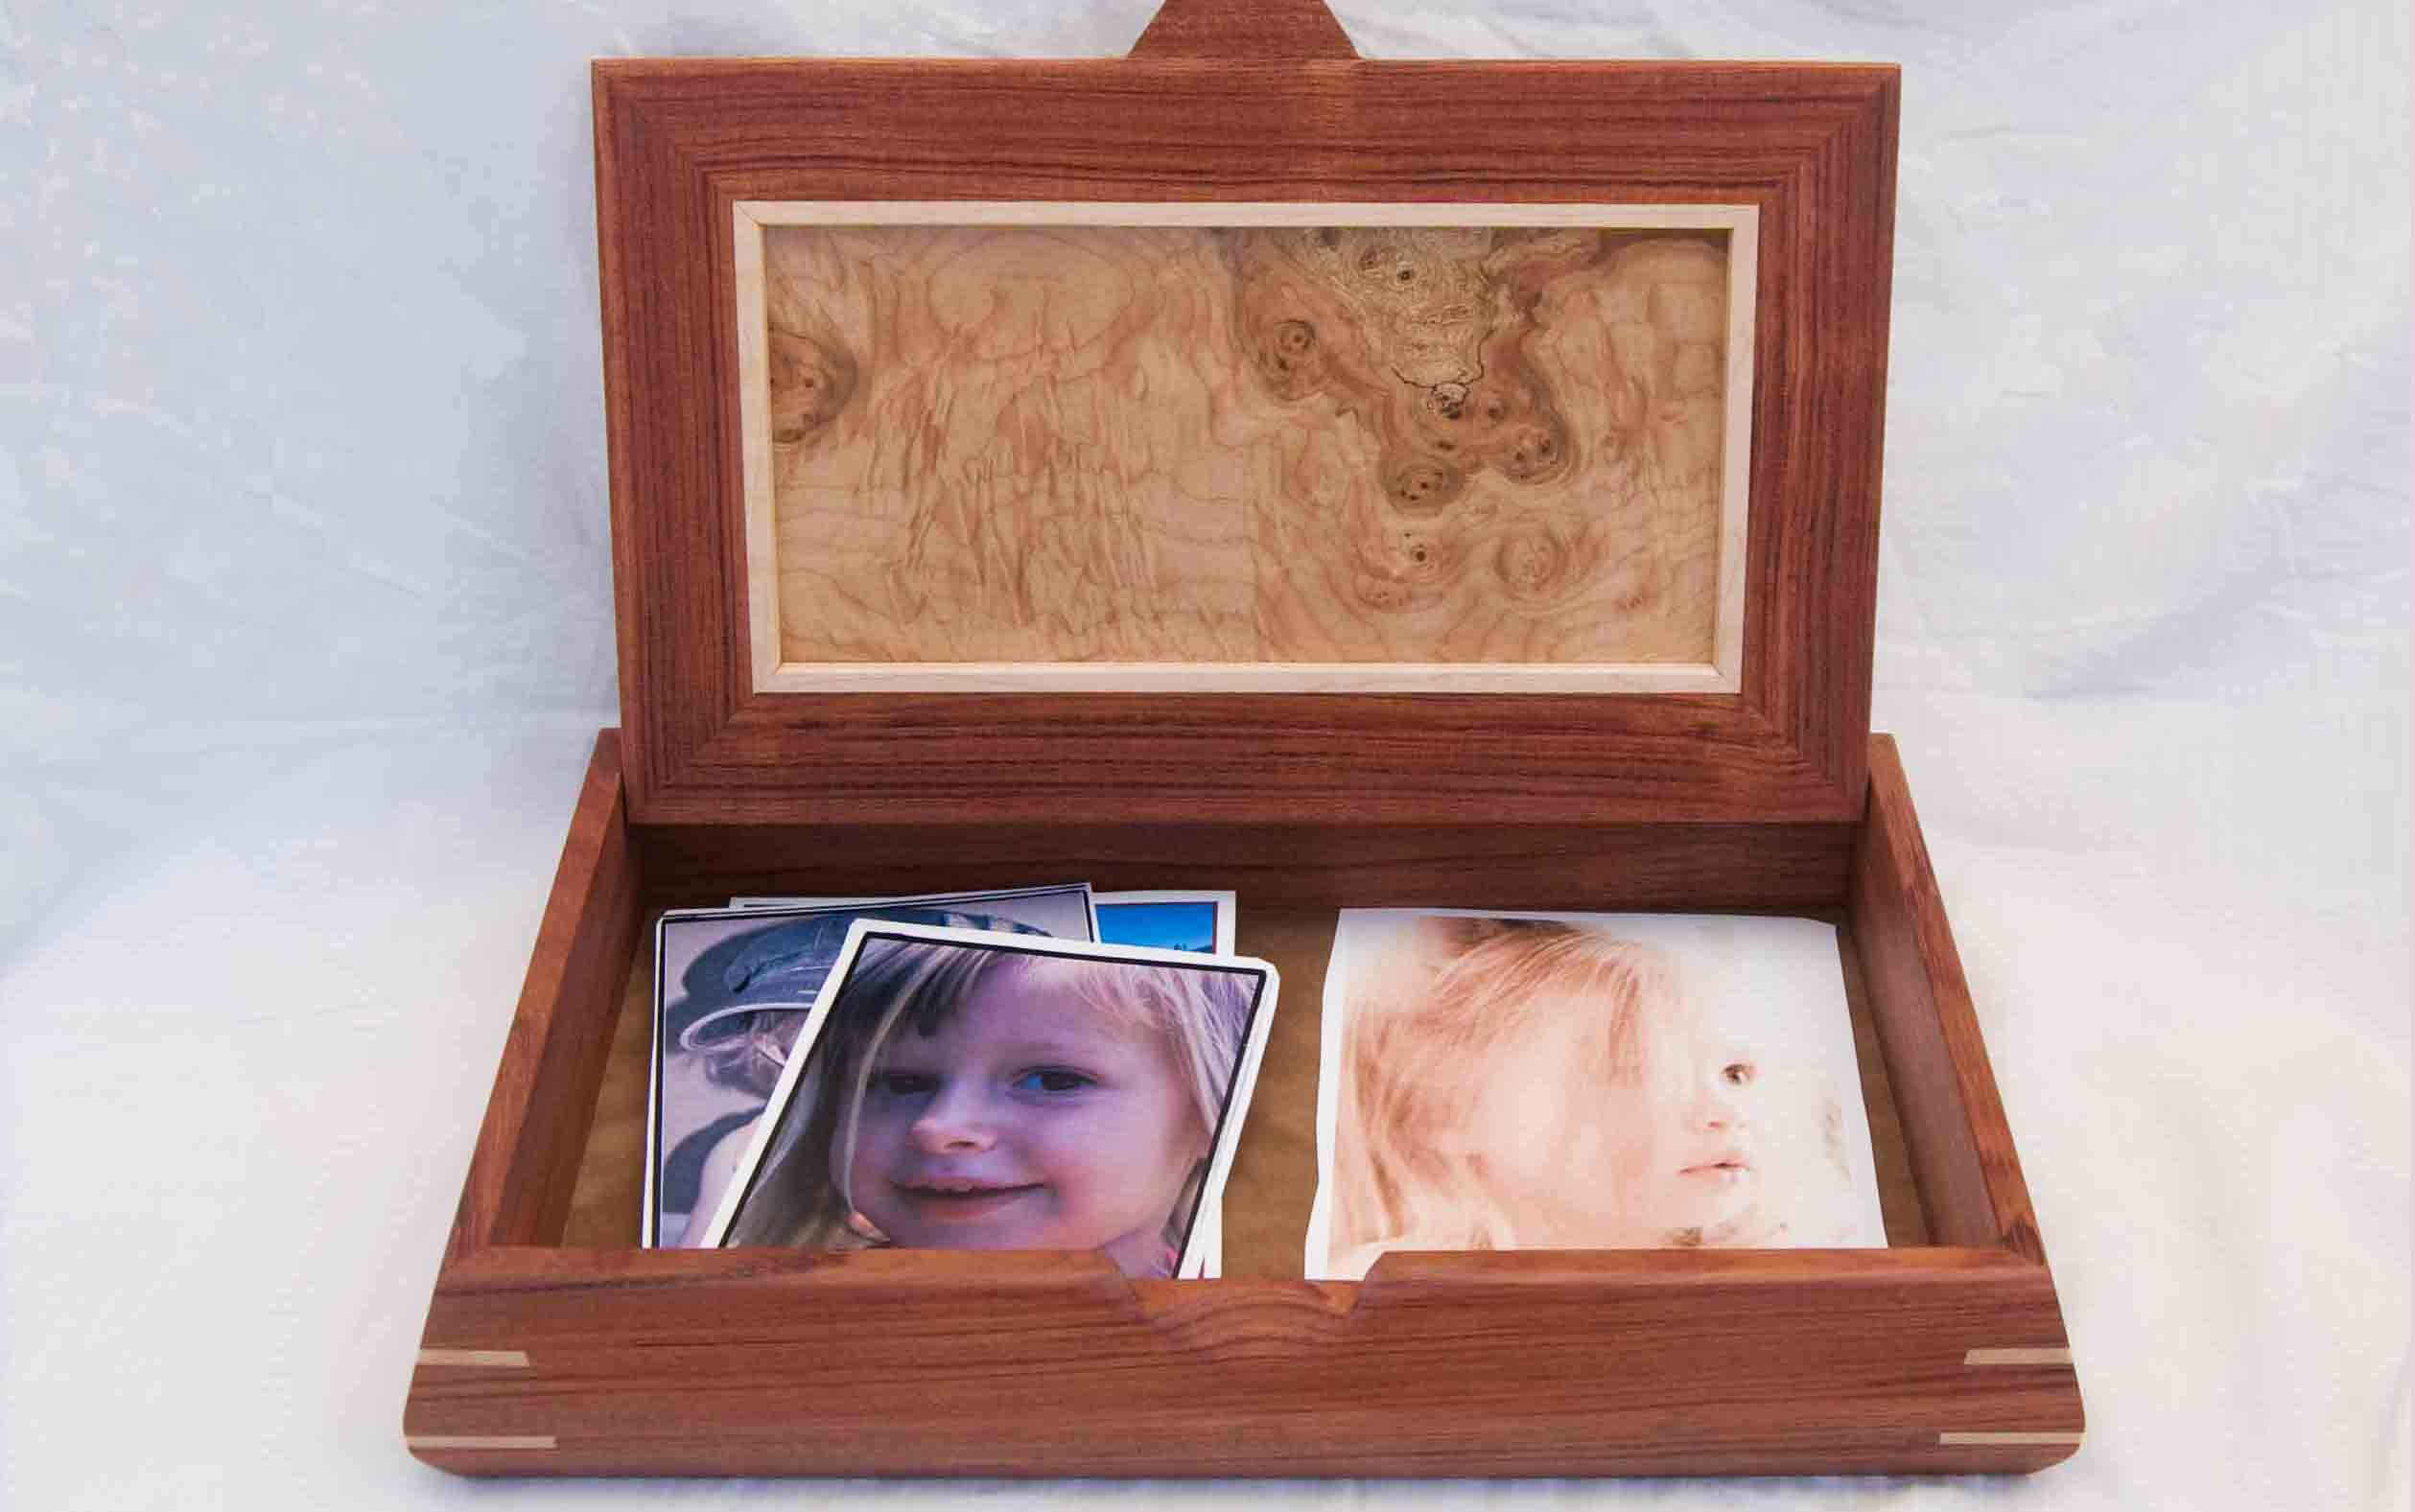 Handcrafted wooden box made of beautiful woods show with the lid open and holding photos